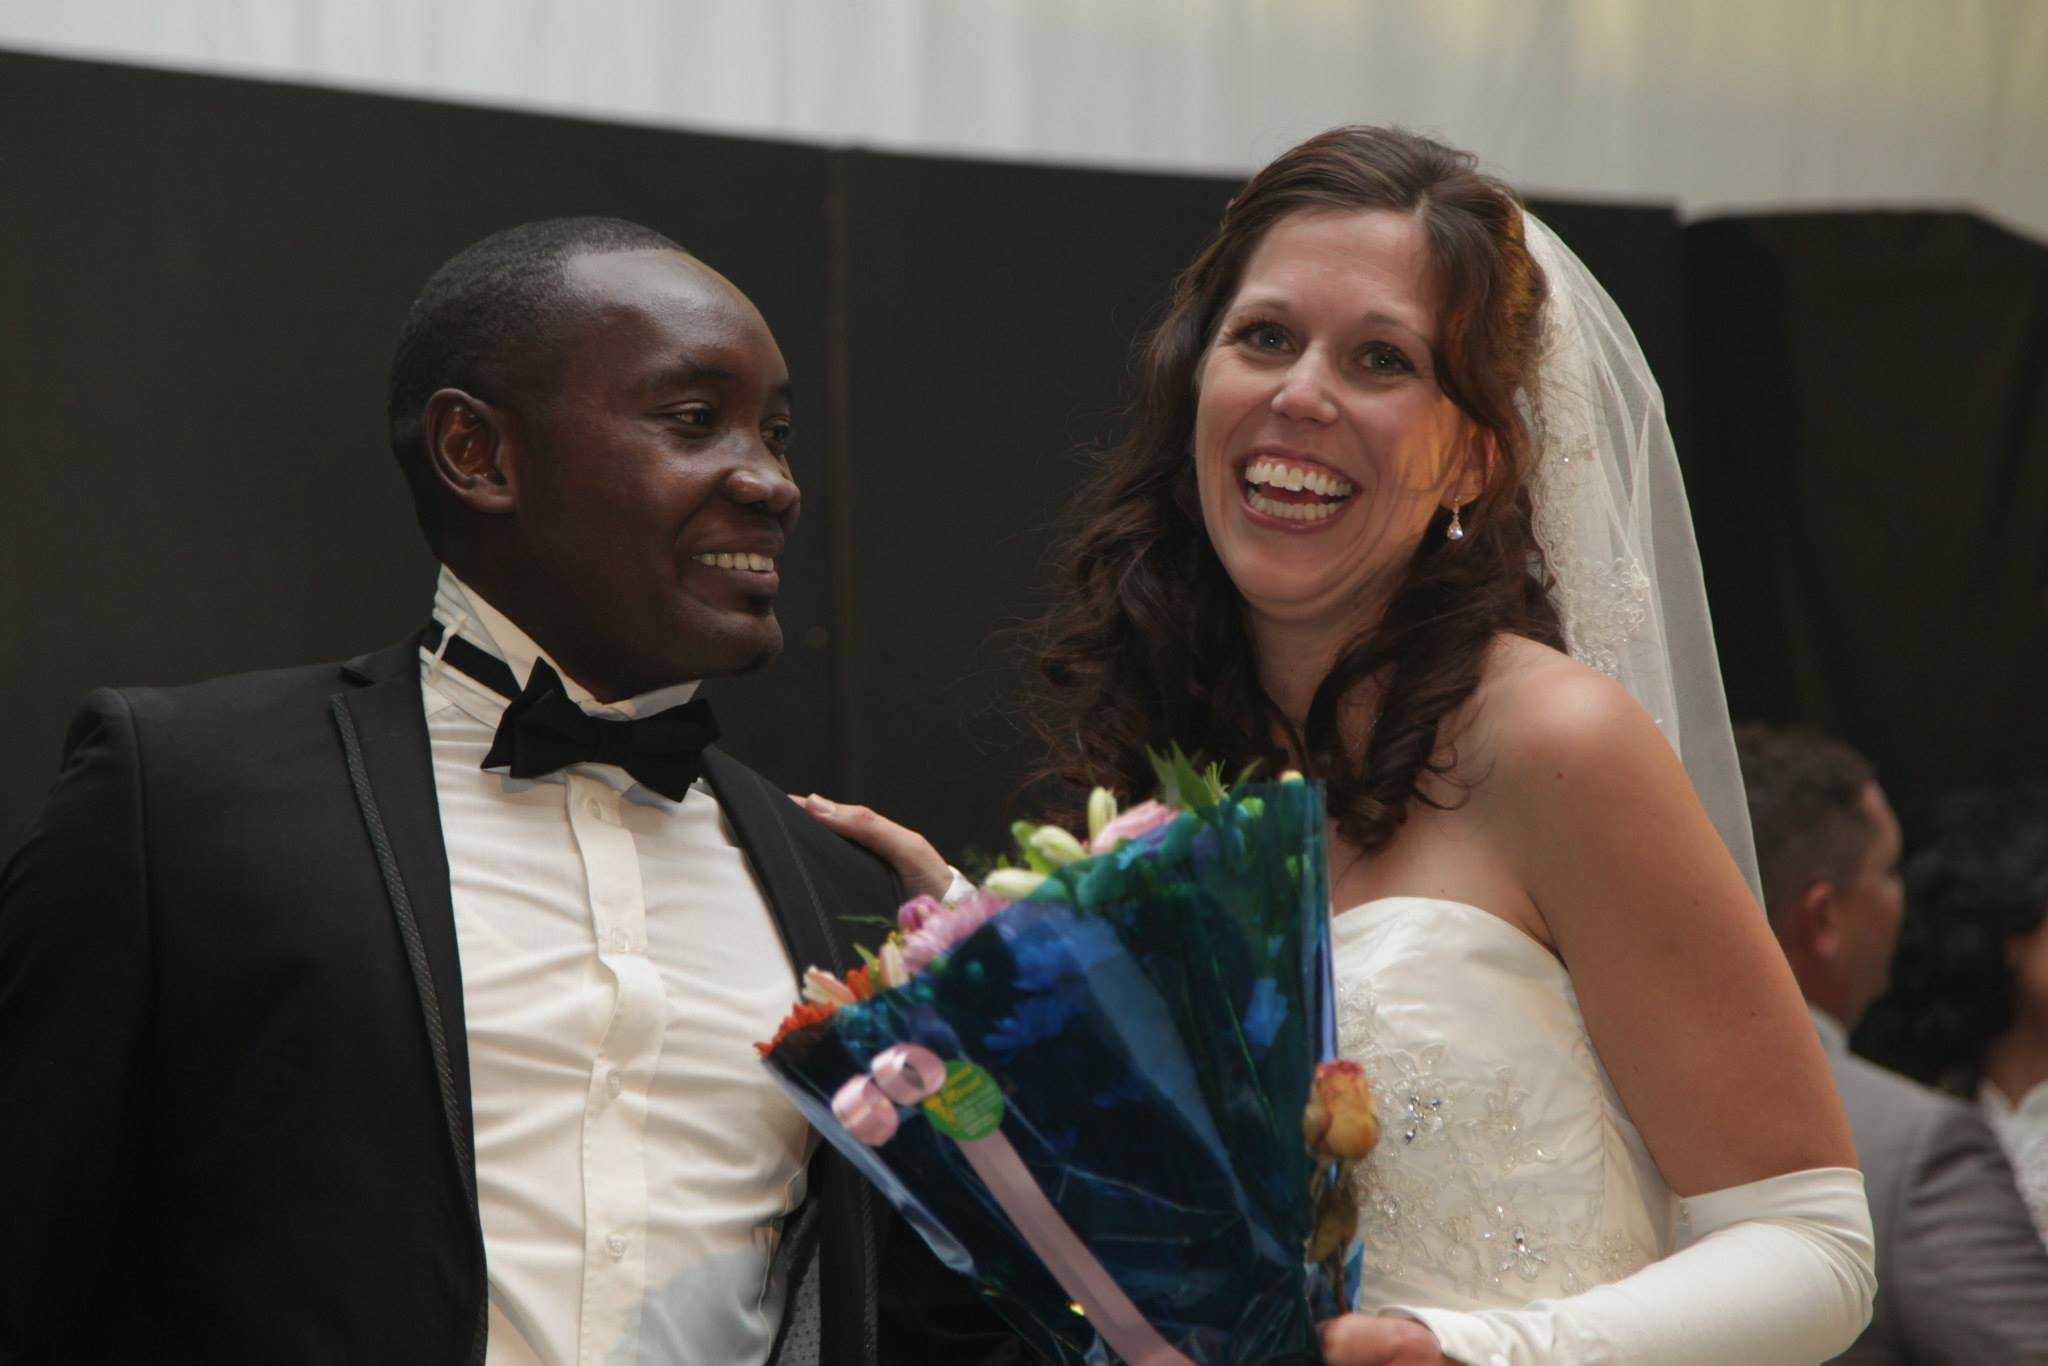 Winning Bridal Couple 2014: Patrick and Jennieke Kafuka. (Photo courtesy of Namibia Tourism Expo 2014 FB page)